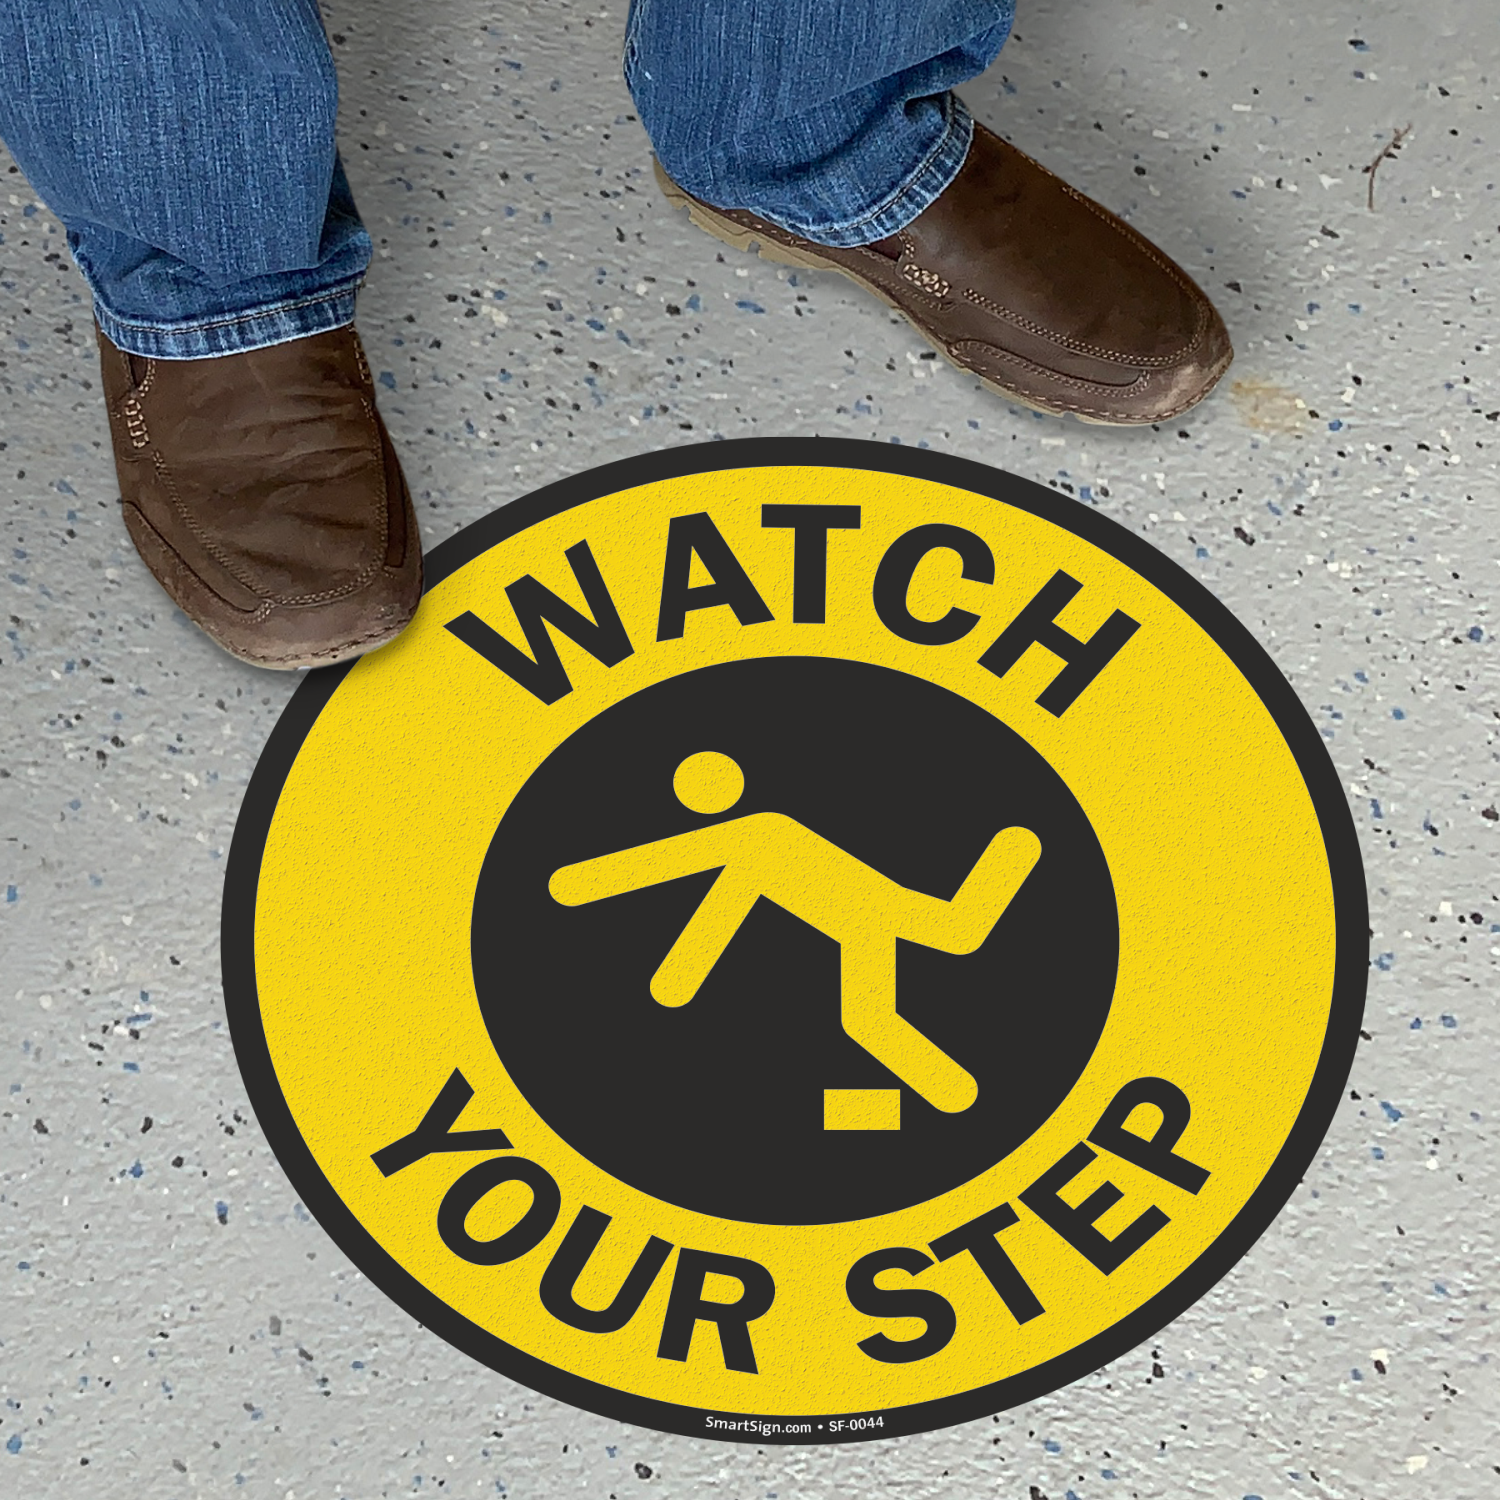 Watch Your Step Adhesive Floor Sign Sku Sf 0044